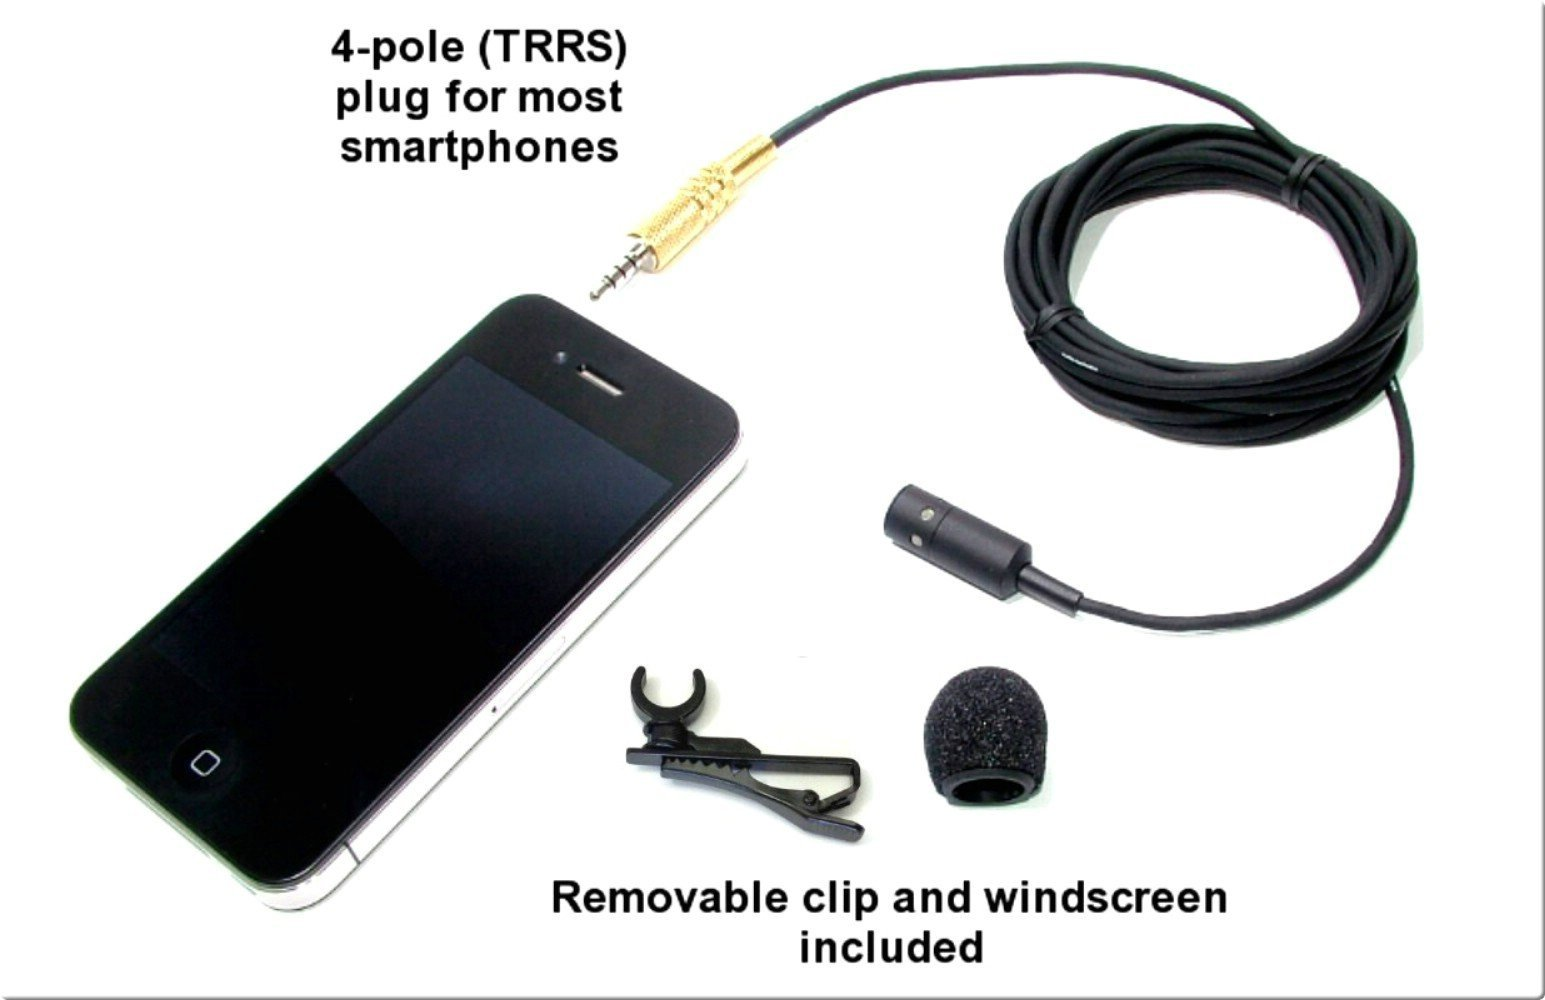 PERISCOPE-MIC-2 - Periscope Compatible Professional Uni-Directional (Cardioid) Lapel Microphone with 114'' cable, lapel clip & windscreen for iPhone/iPad/other Smartphones - Item #12502